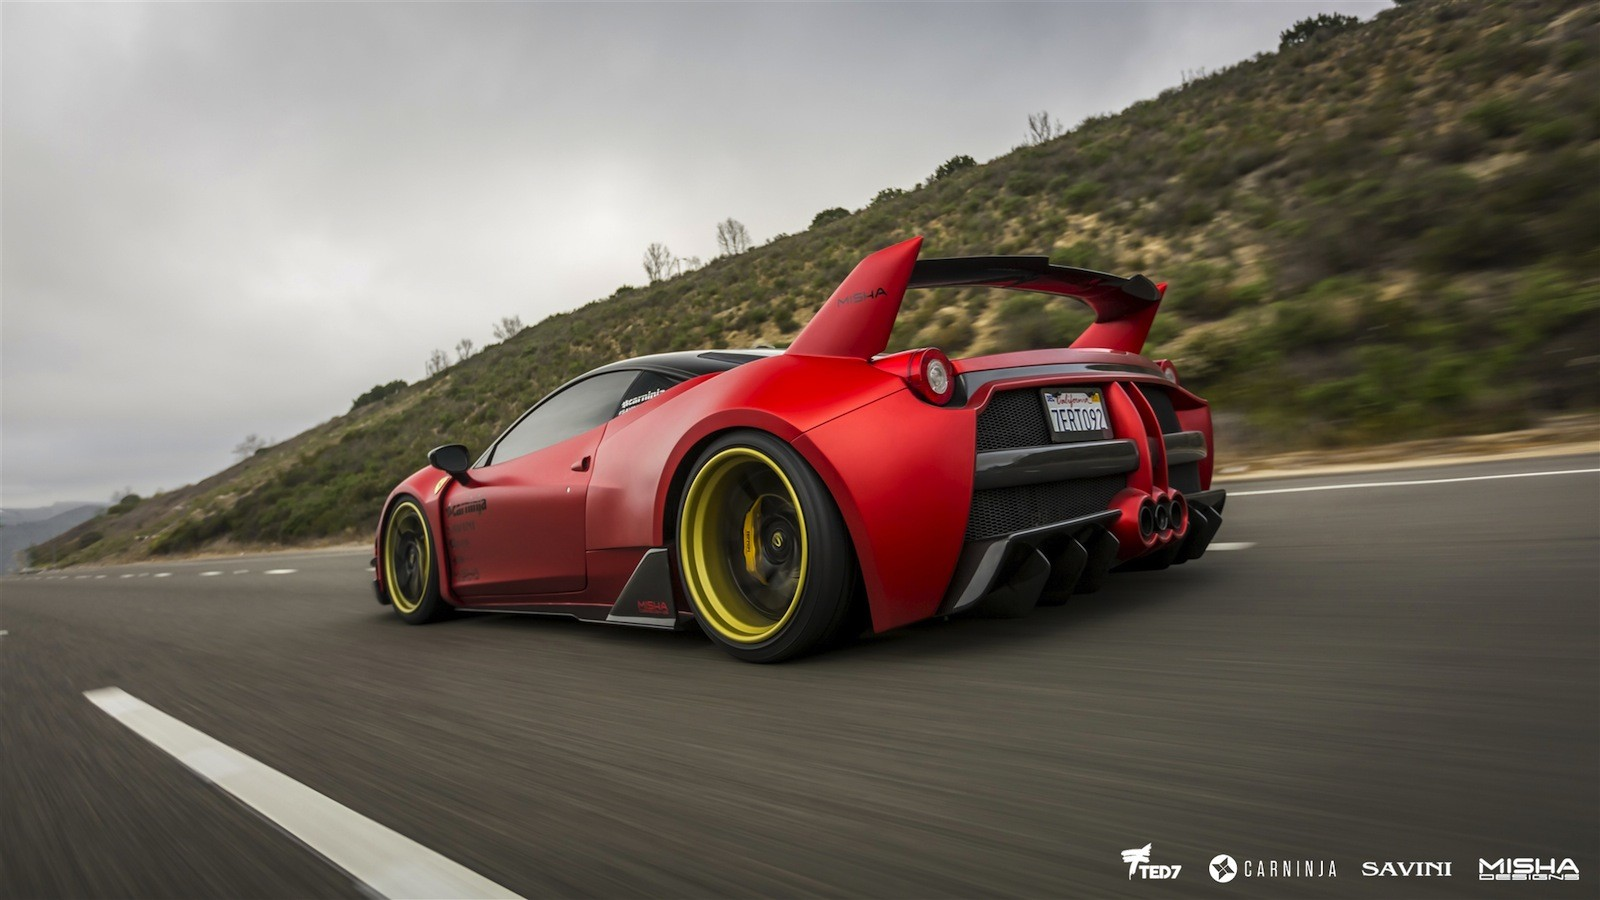 Electric 1978 Vw Beetle Convertible also Range extender  vehicle moreover Two Spectacular Misha Design Ferrari 458 Supercars Blow Us Away 106141 further Exotic Women Get Joyrides In A Ferrari 458 Lamborghini Huracan And Aventador Video 98561 as well 11730. on electric car conversion california